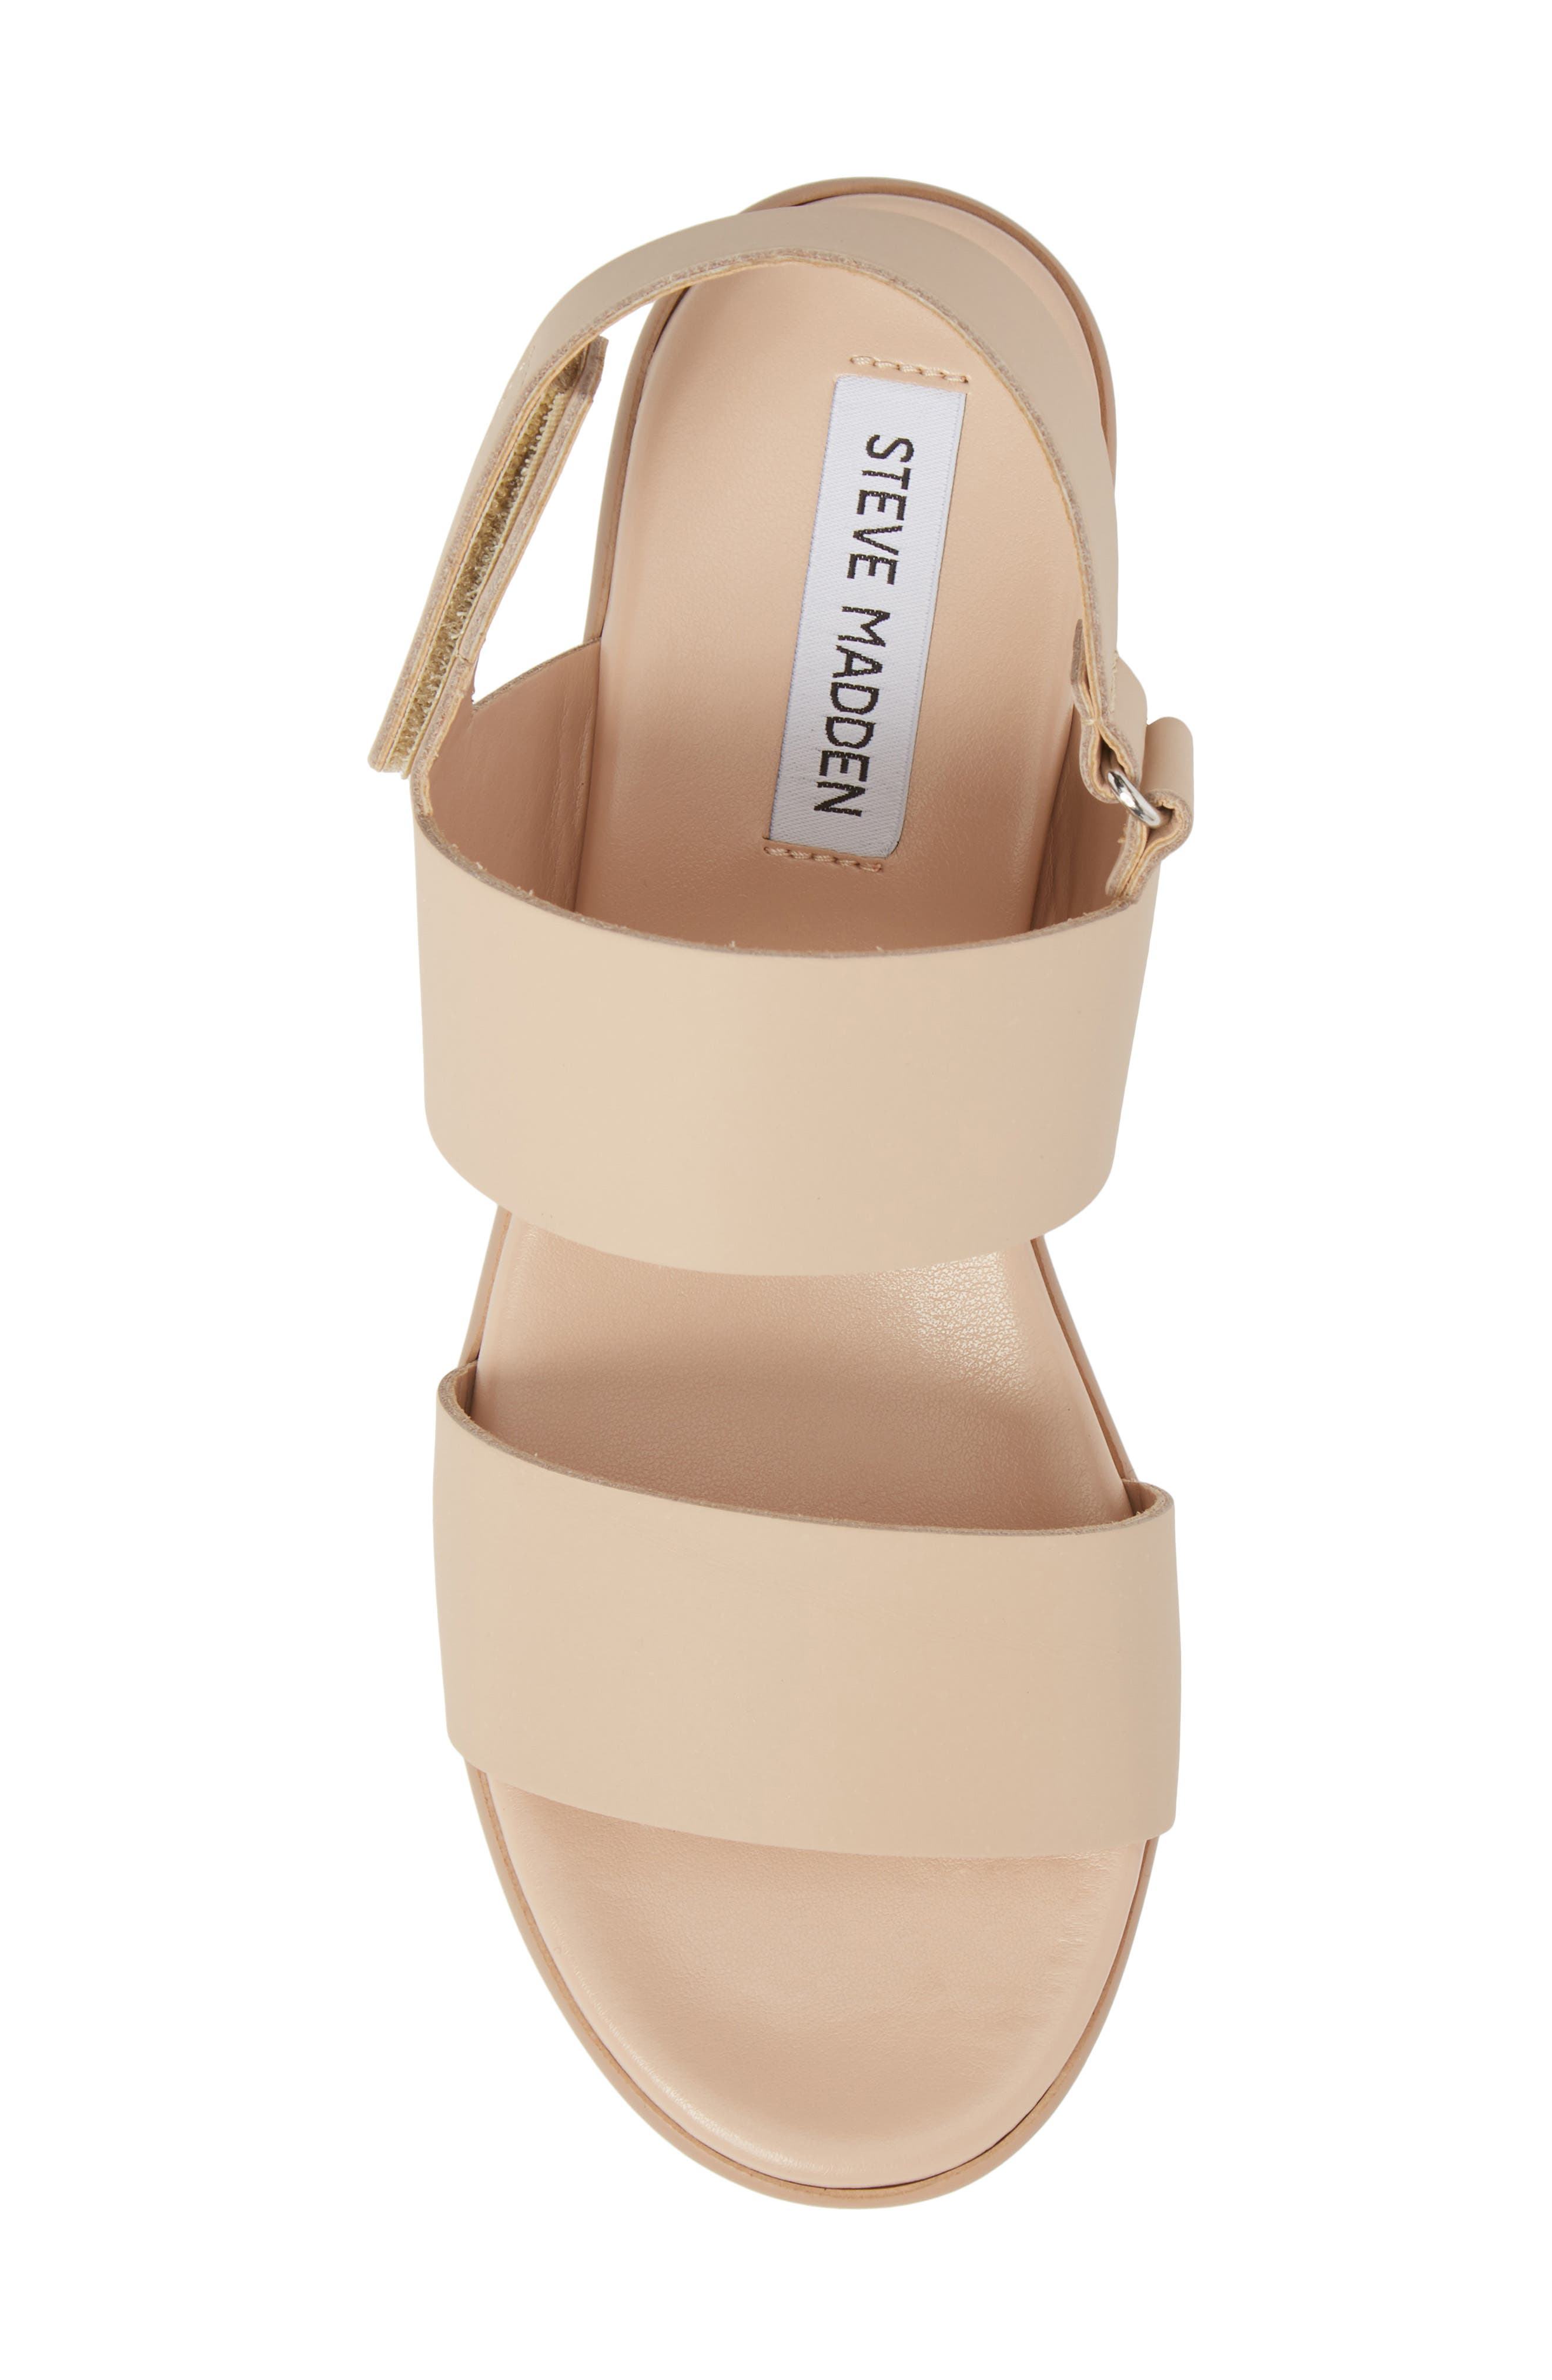 Rachel Platform Wedge Sandal,                             Alternate thumbnail 5, color,                             250